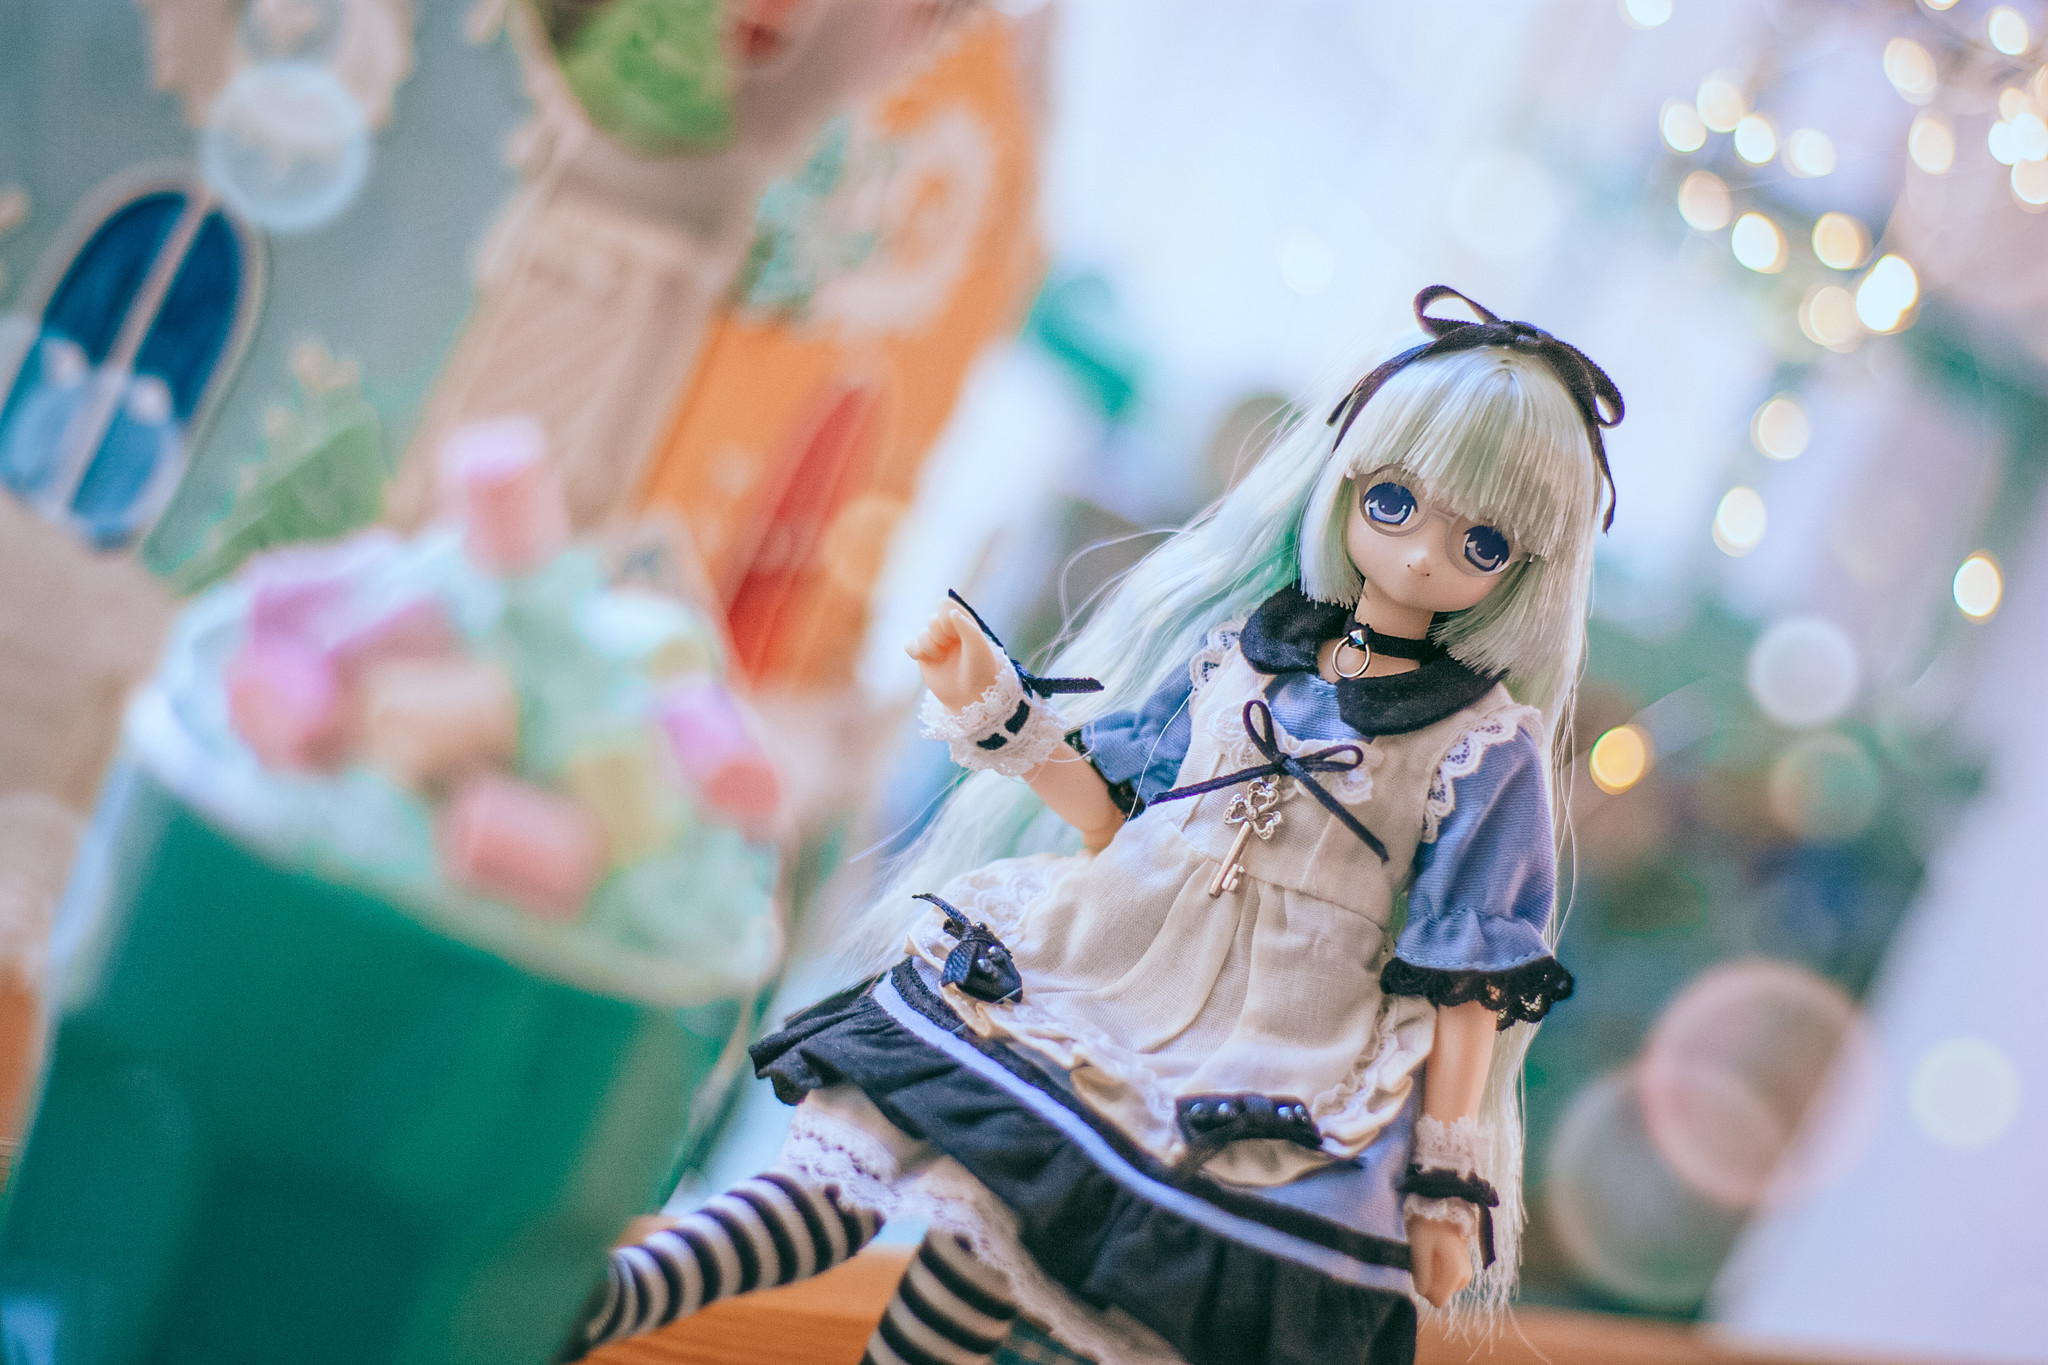 https://static.myfigurecollection.net/upload/pictures/2020/02/20/2392575.jpeg